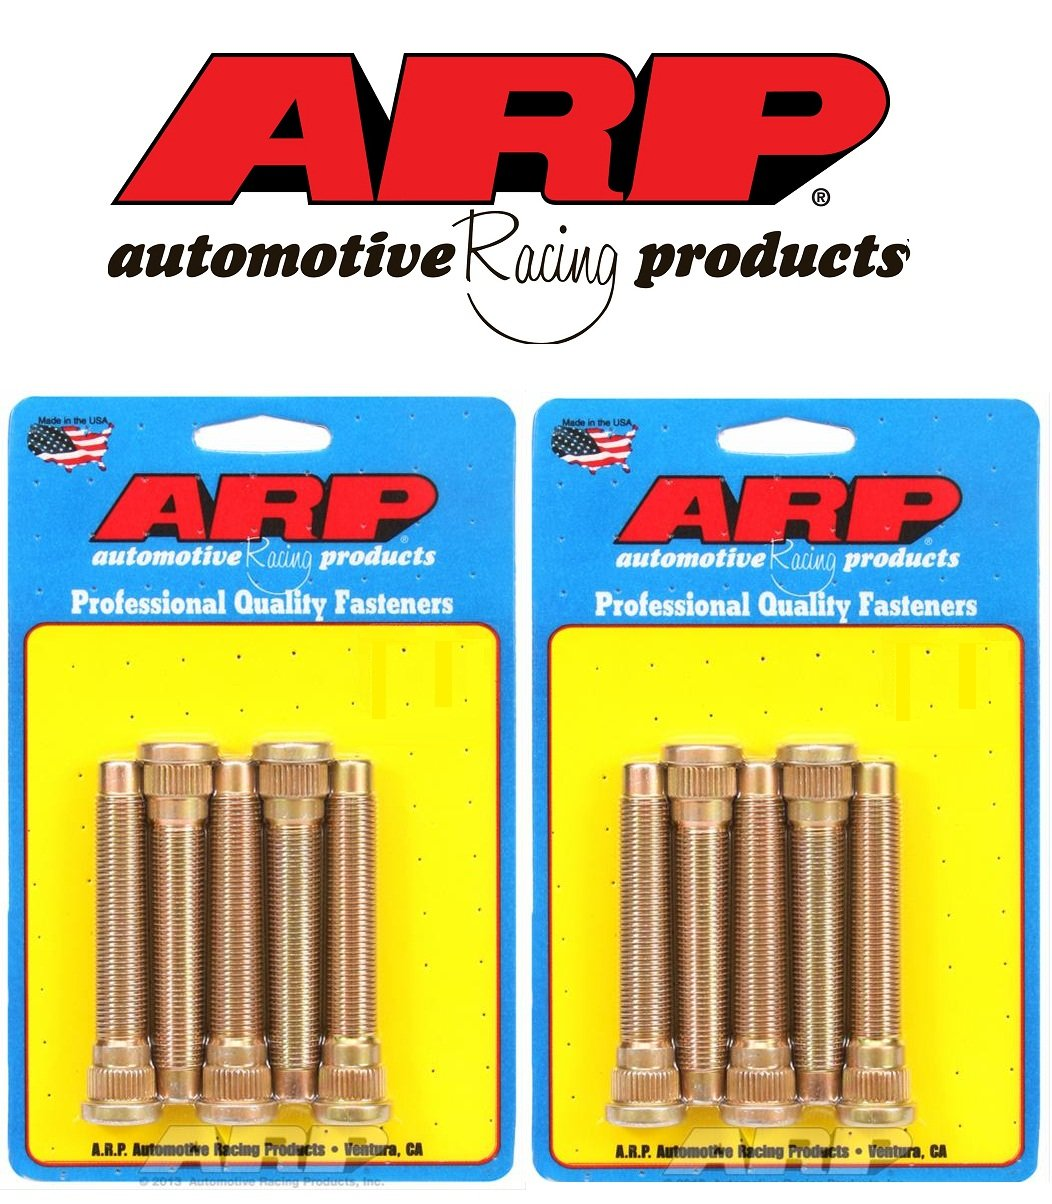 ARP Front Wheel Stud Kit For 2005+ Ford Mustang (Set of 10)